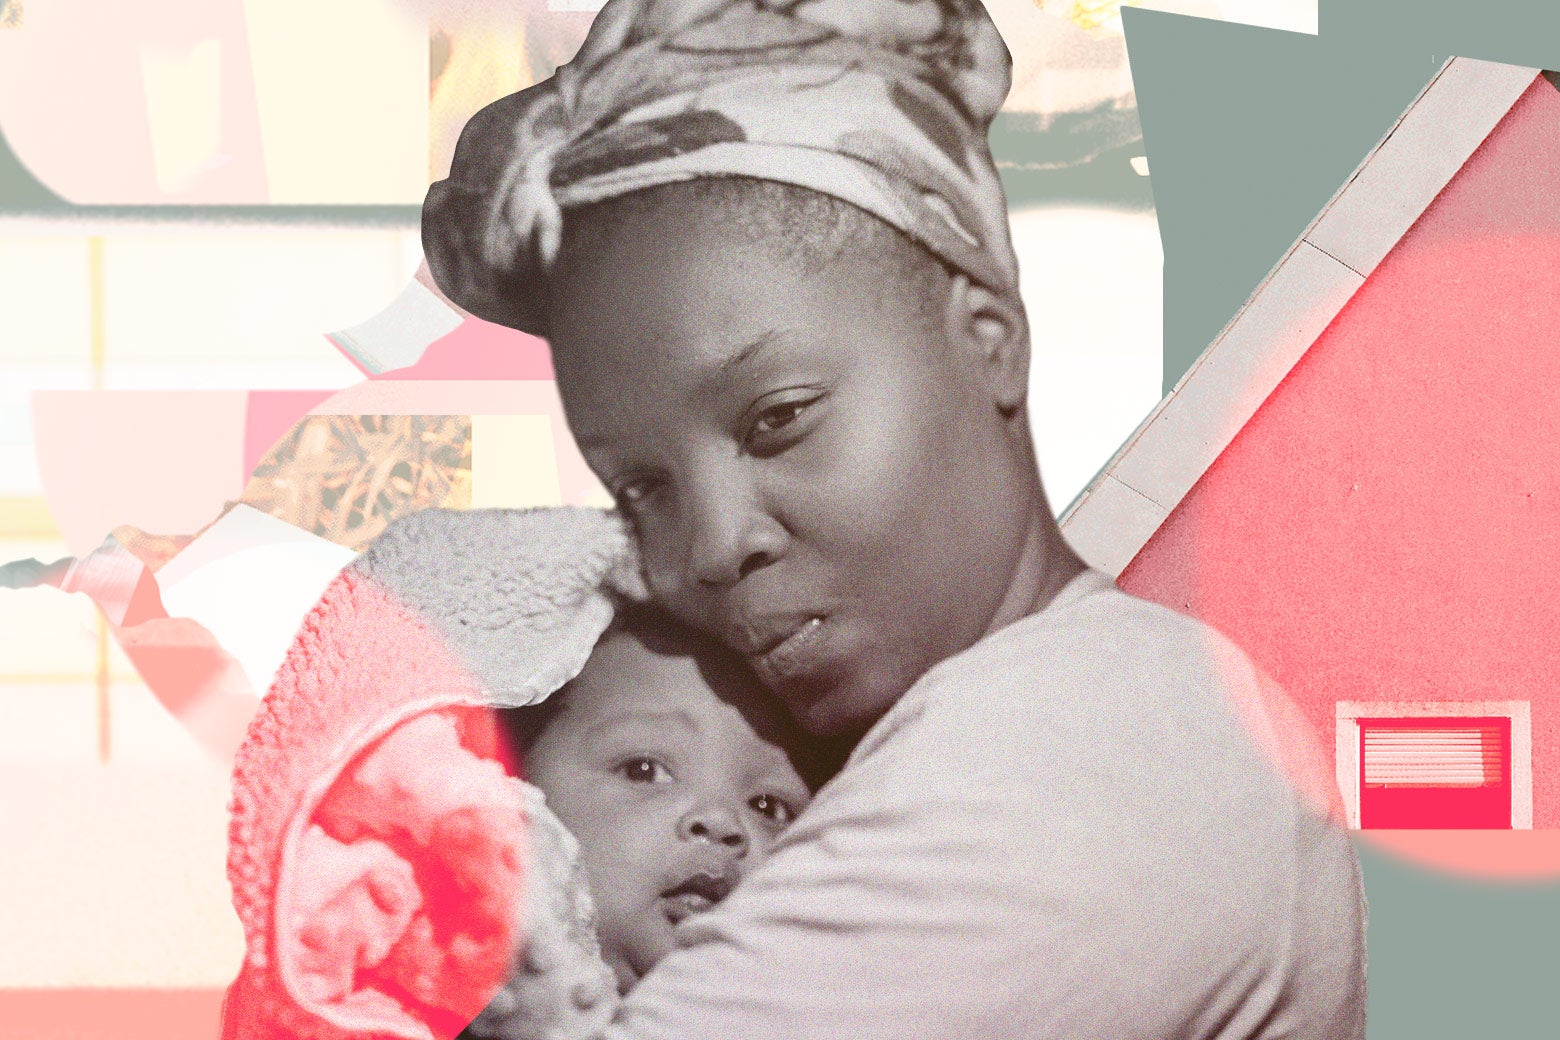 A woman in a head wrap holds a baby in a towel.